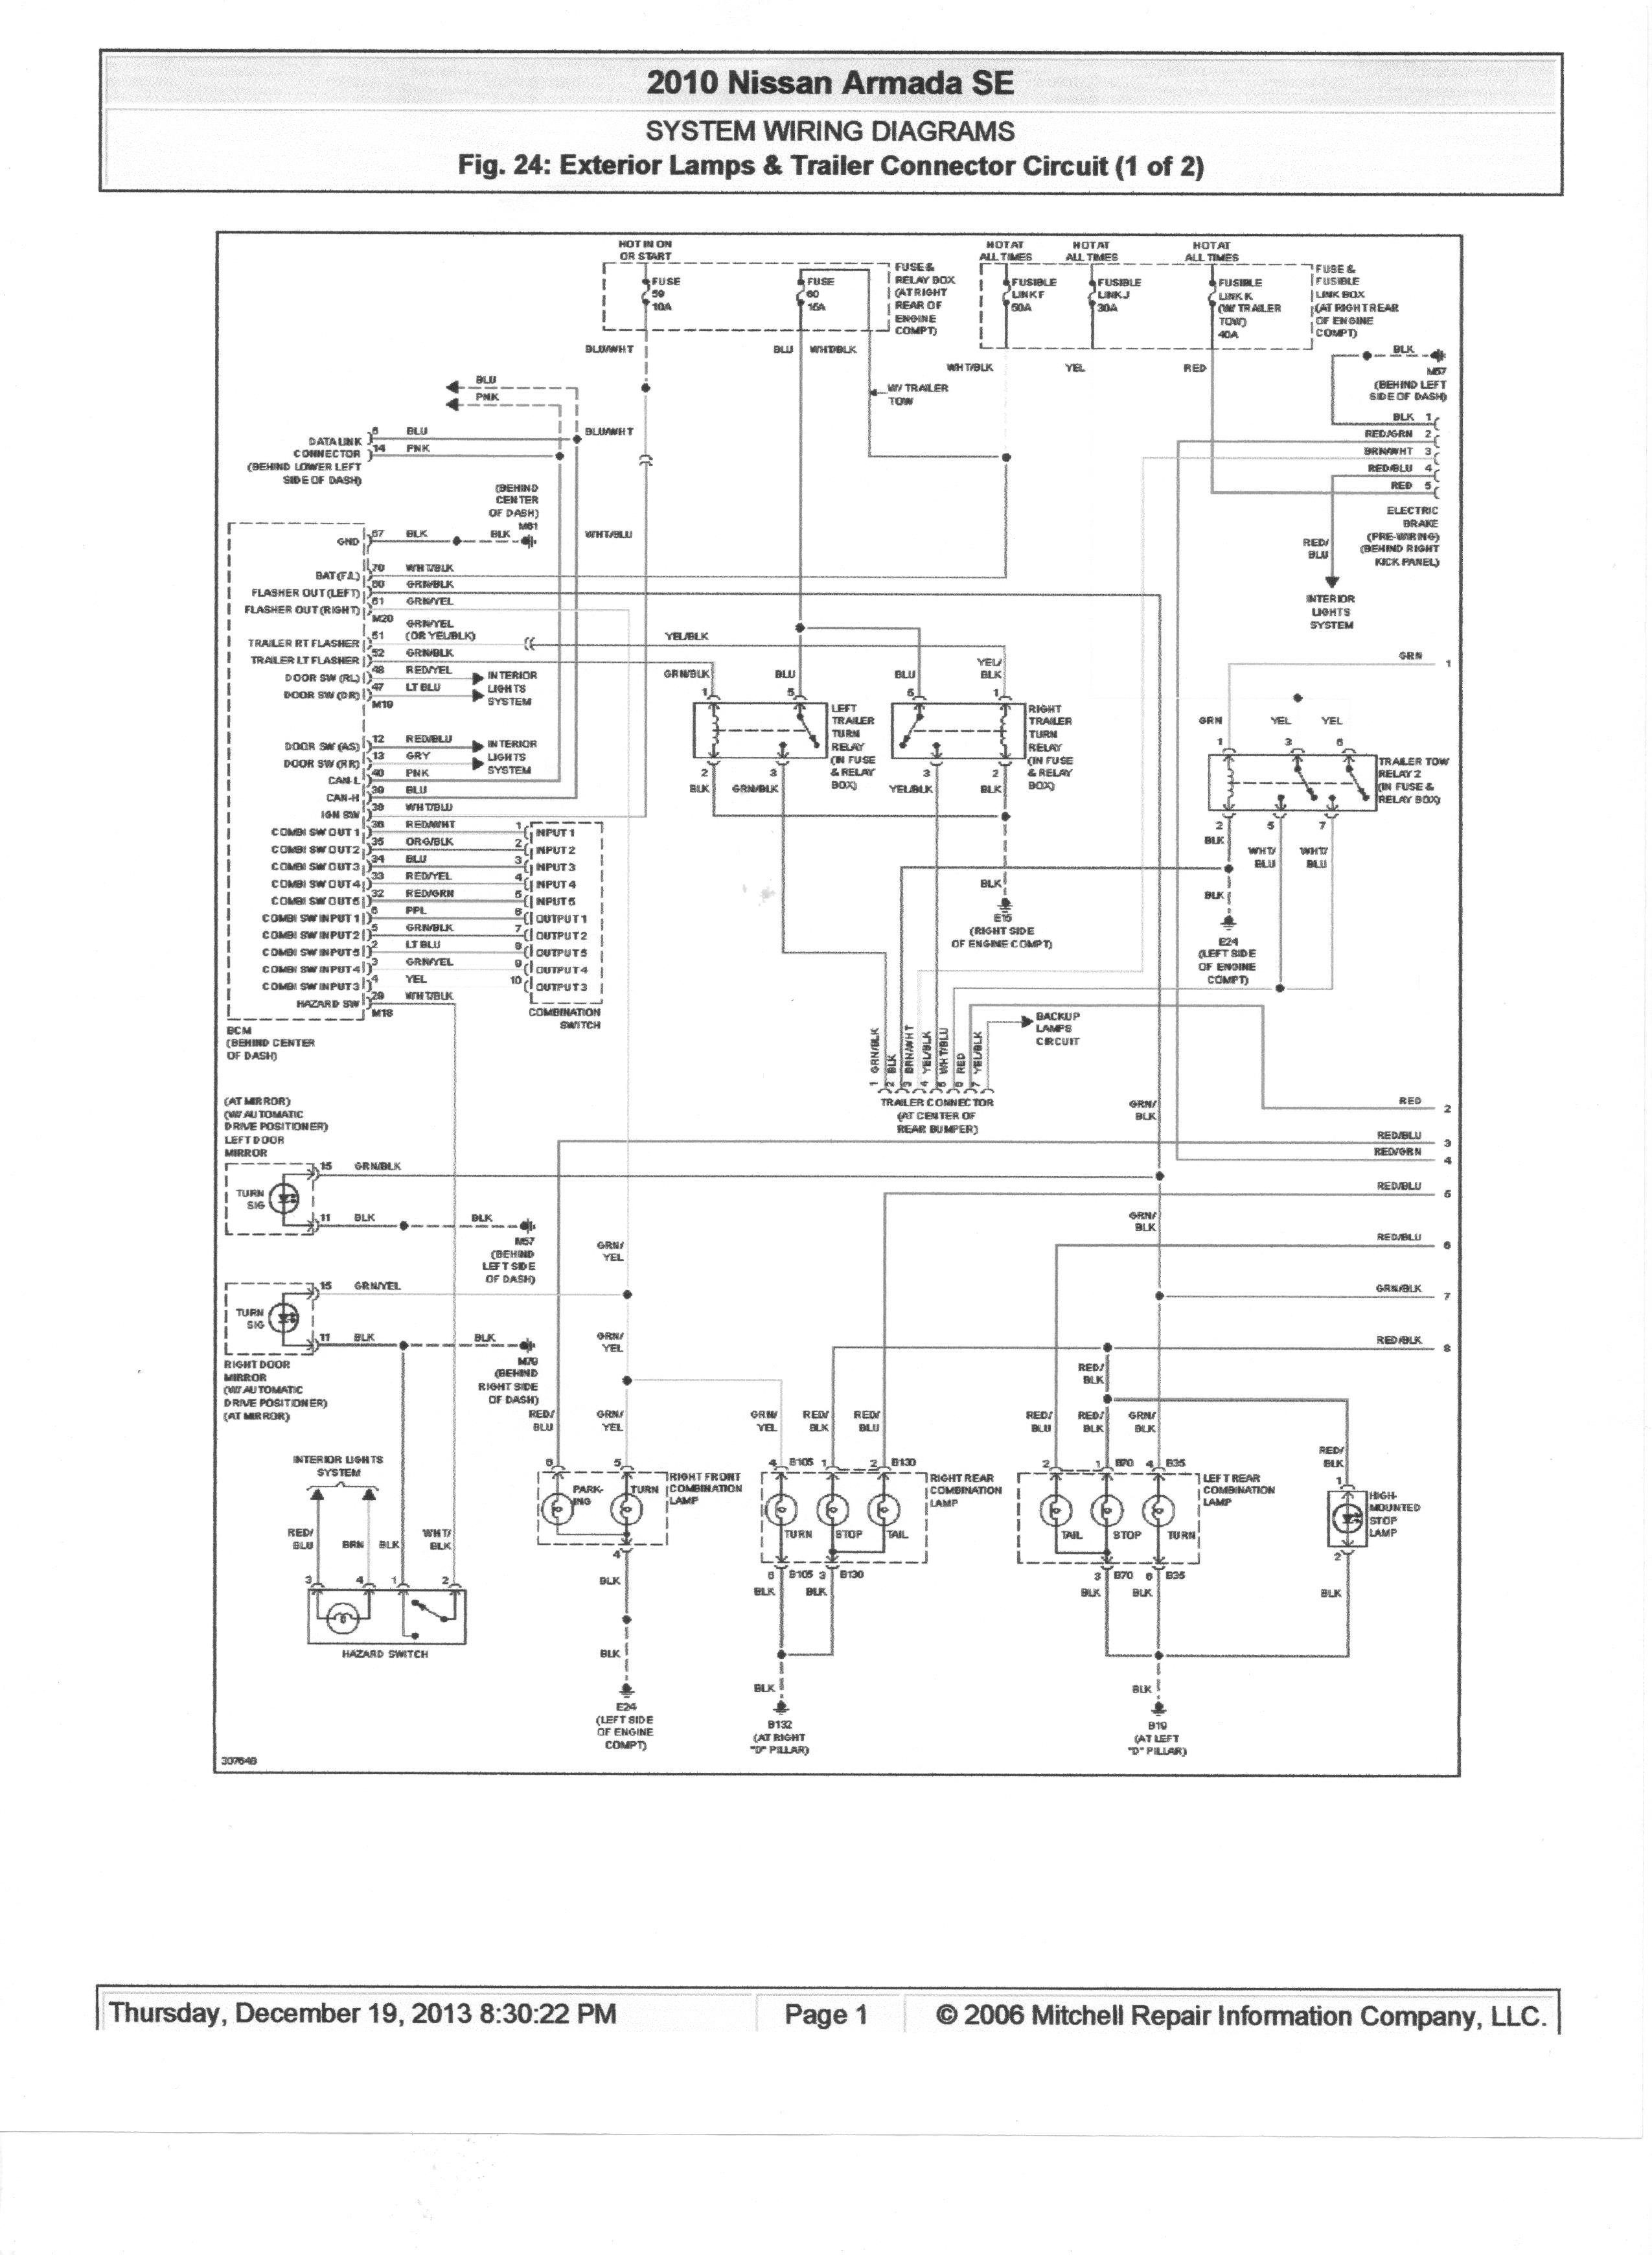 DIAGRAM] 2005 Nissan Pathfinder Trailer Wiring Diagram FULL Version HD  Quality Wiring Diagram - ADVANCEDELECTRICMA.BCCALTABRIANZA.ITBccaltabrianza